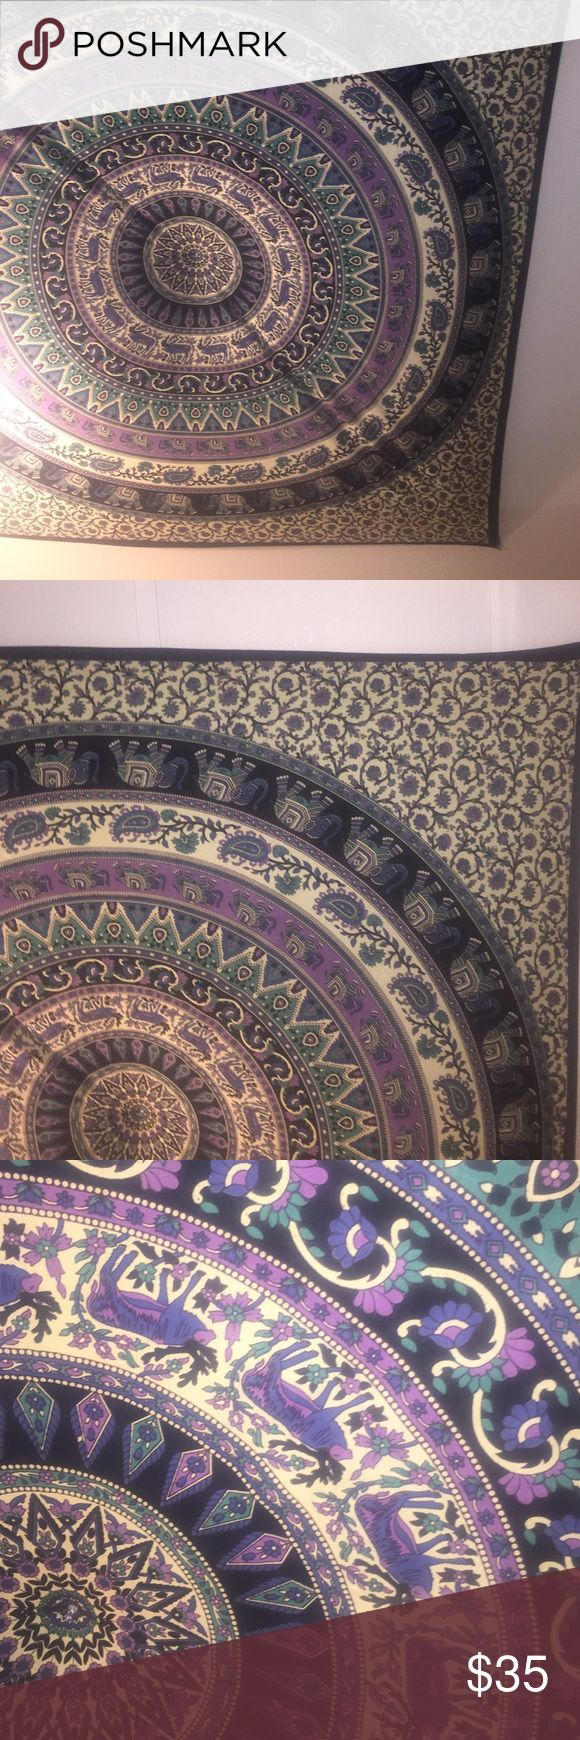 Urban outfitters tapestry Tapestry purchased at urban outfitters. Has elephants and antelopes around. Purple teal cream and black. No rips or stains. Really cool tapestry Urban Outfitters Accessories